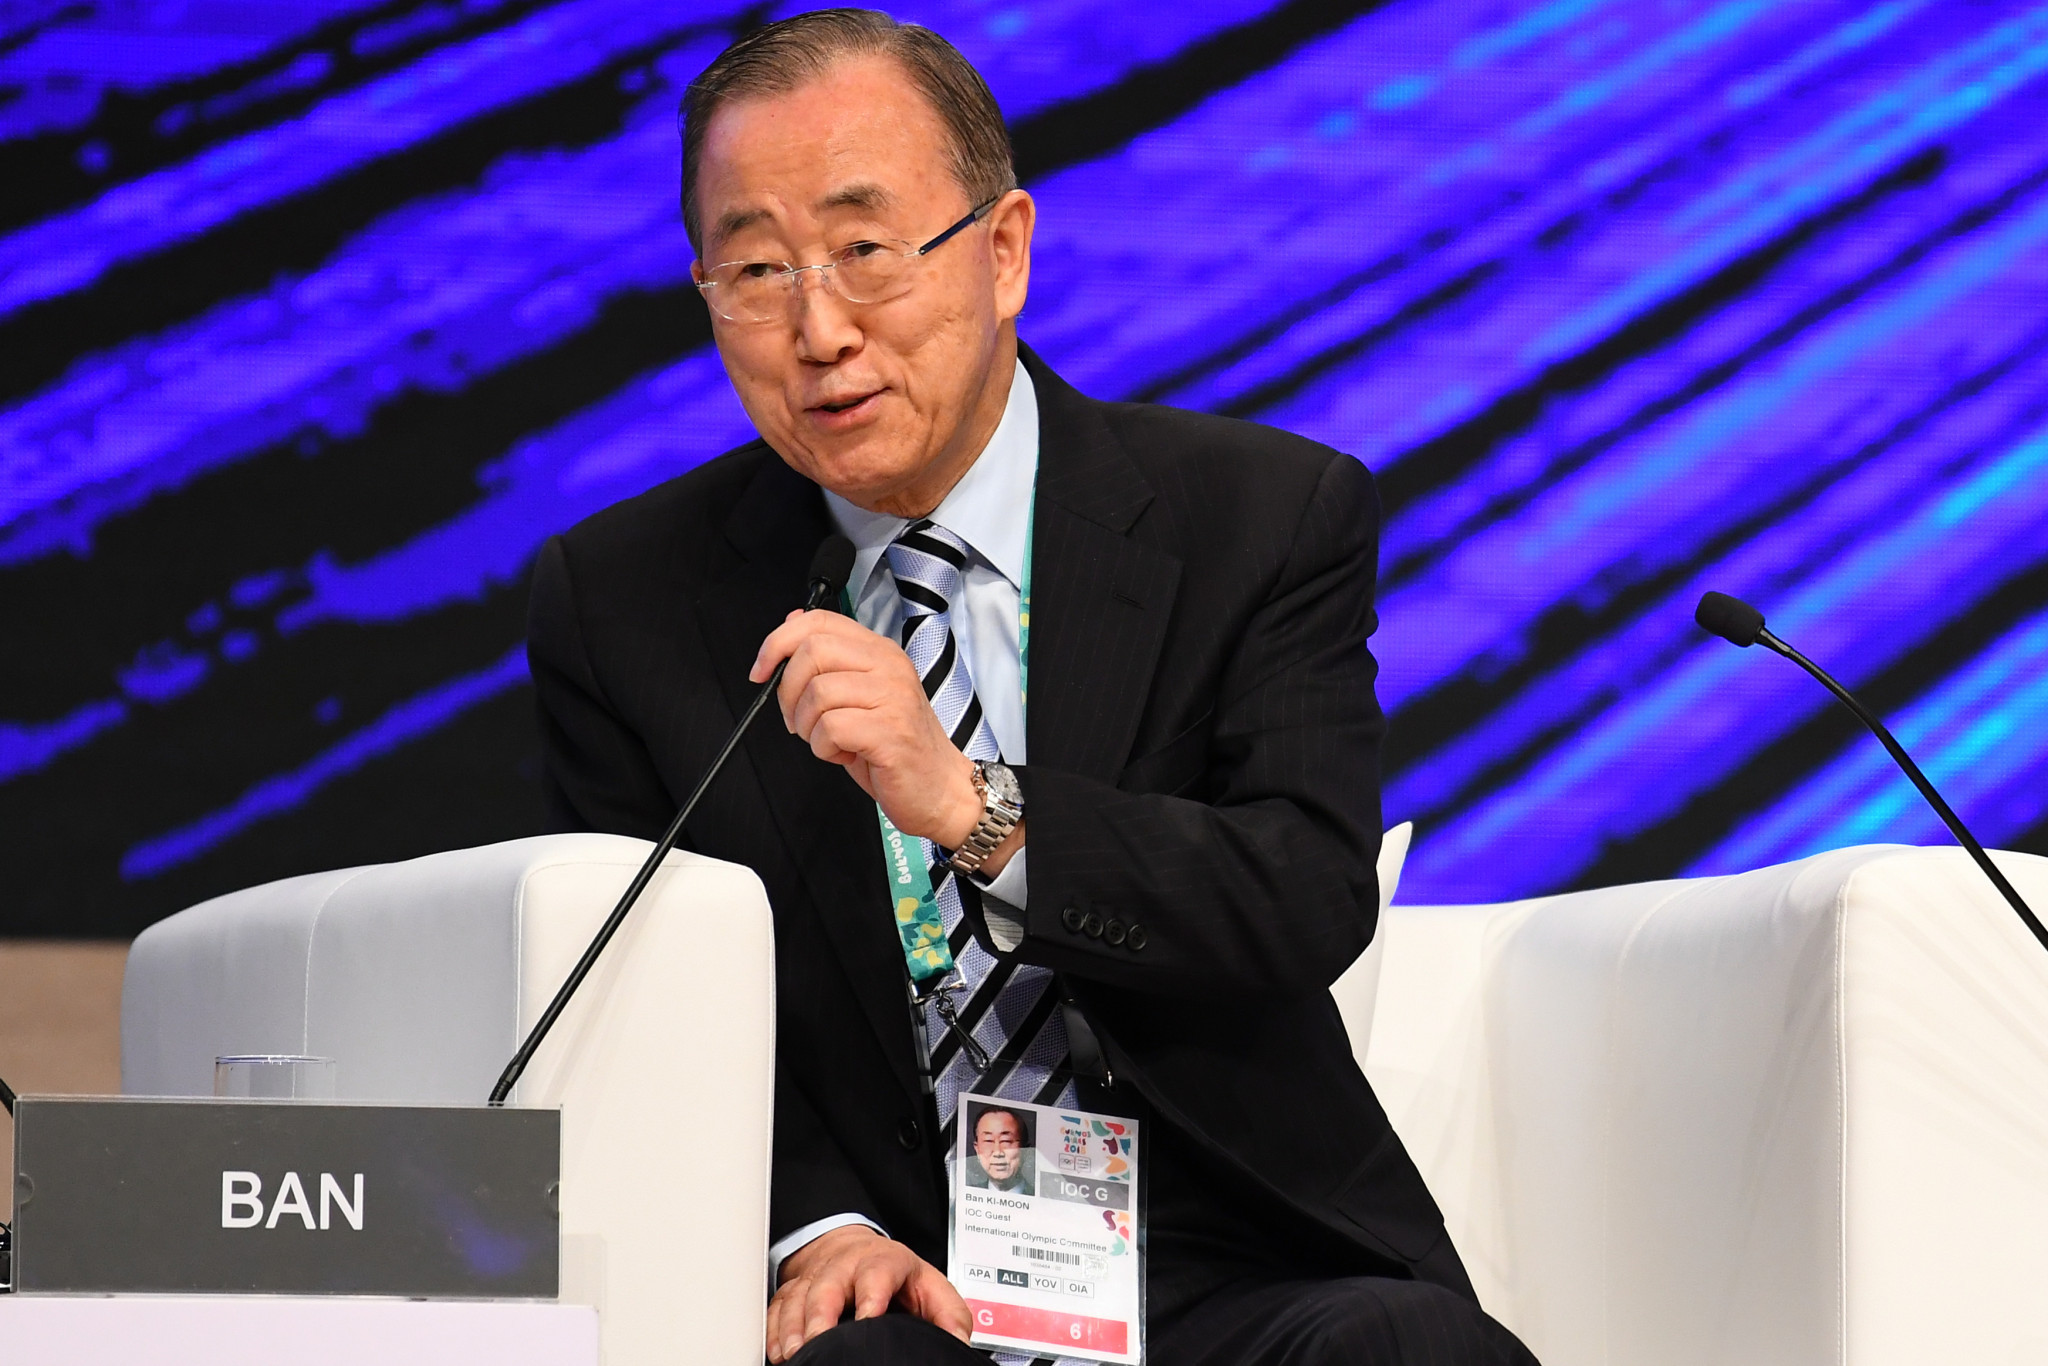 Former UN Secretary General Ban Ki-Moon was named as the independent IOC Ethics Commission chair last September ©Getty Images